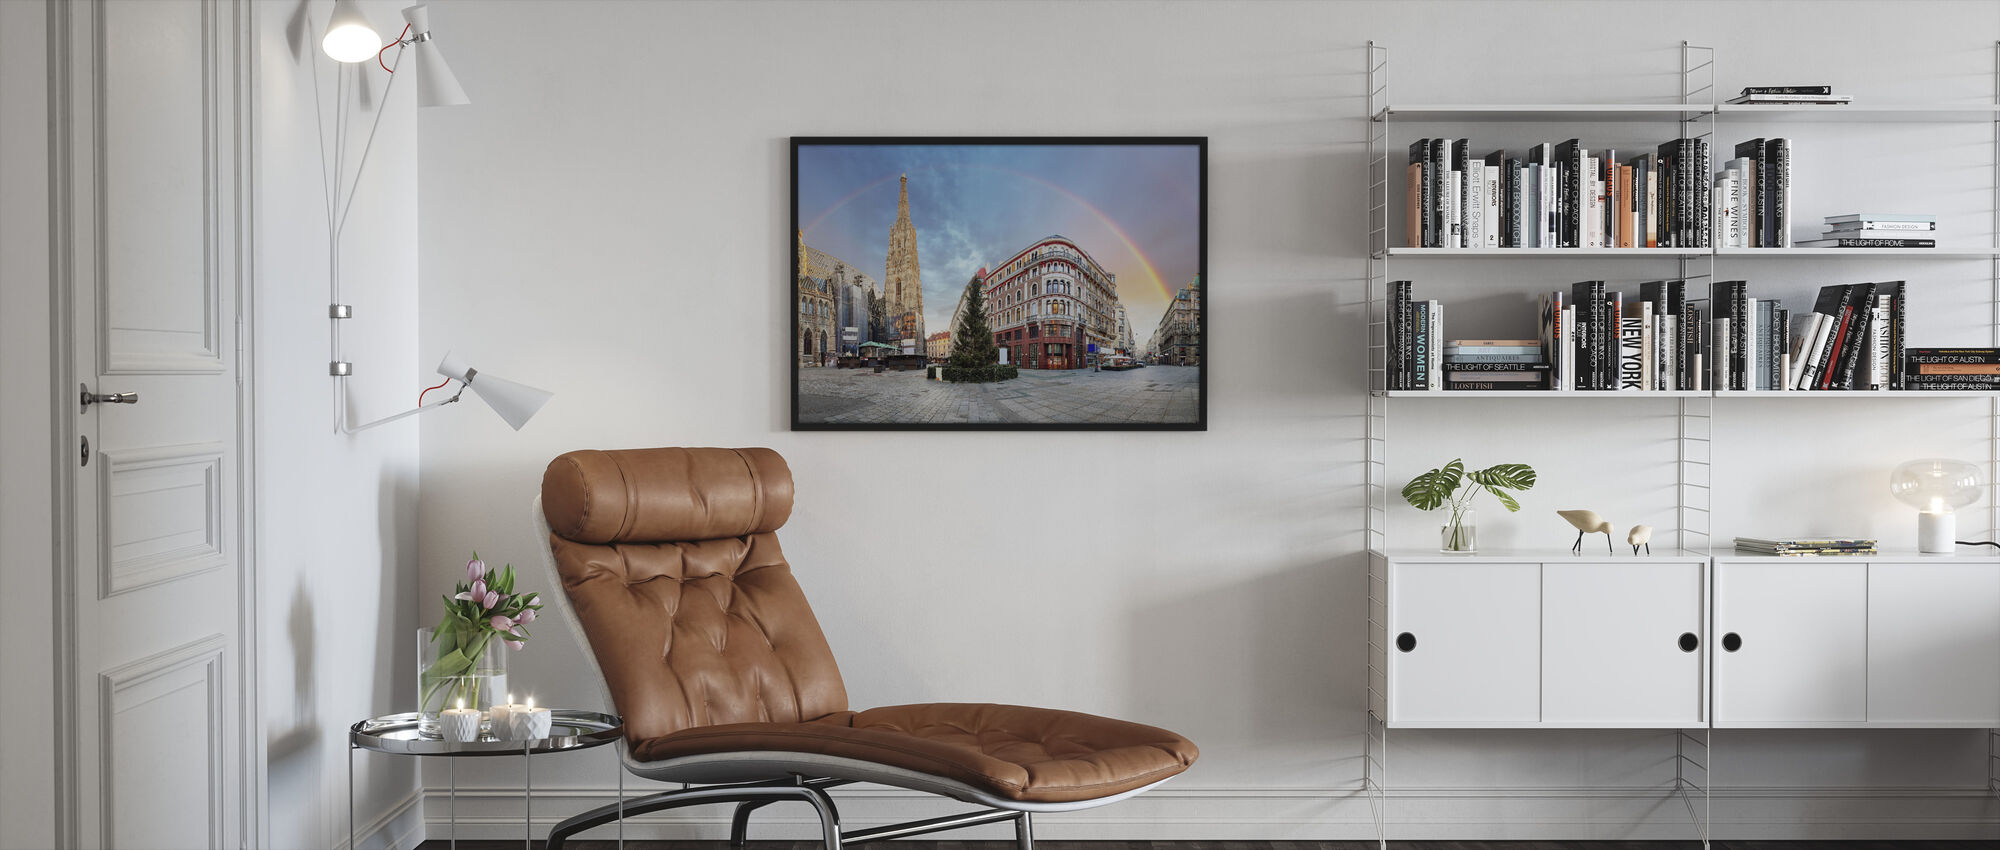 Vienna Square with Rainbow - Framed print - Living Room